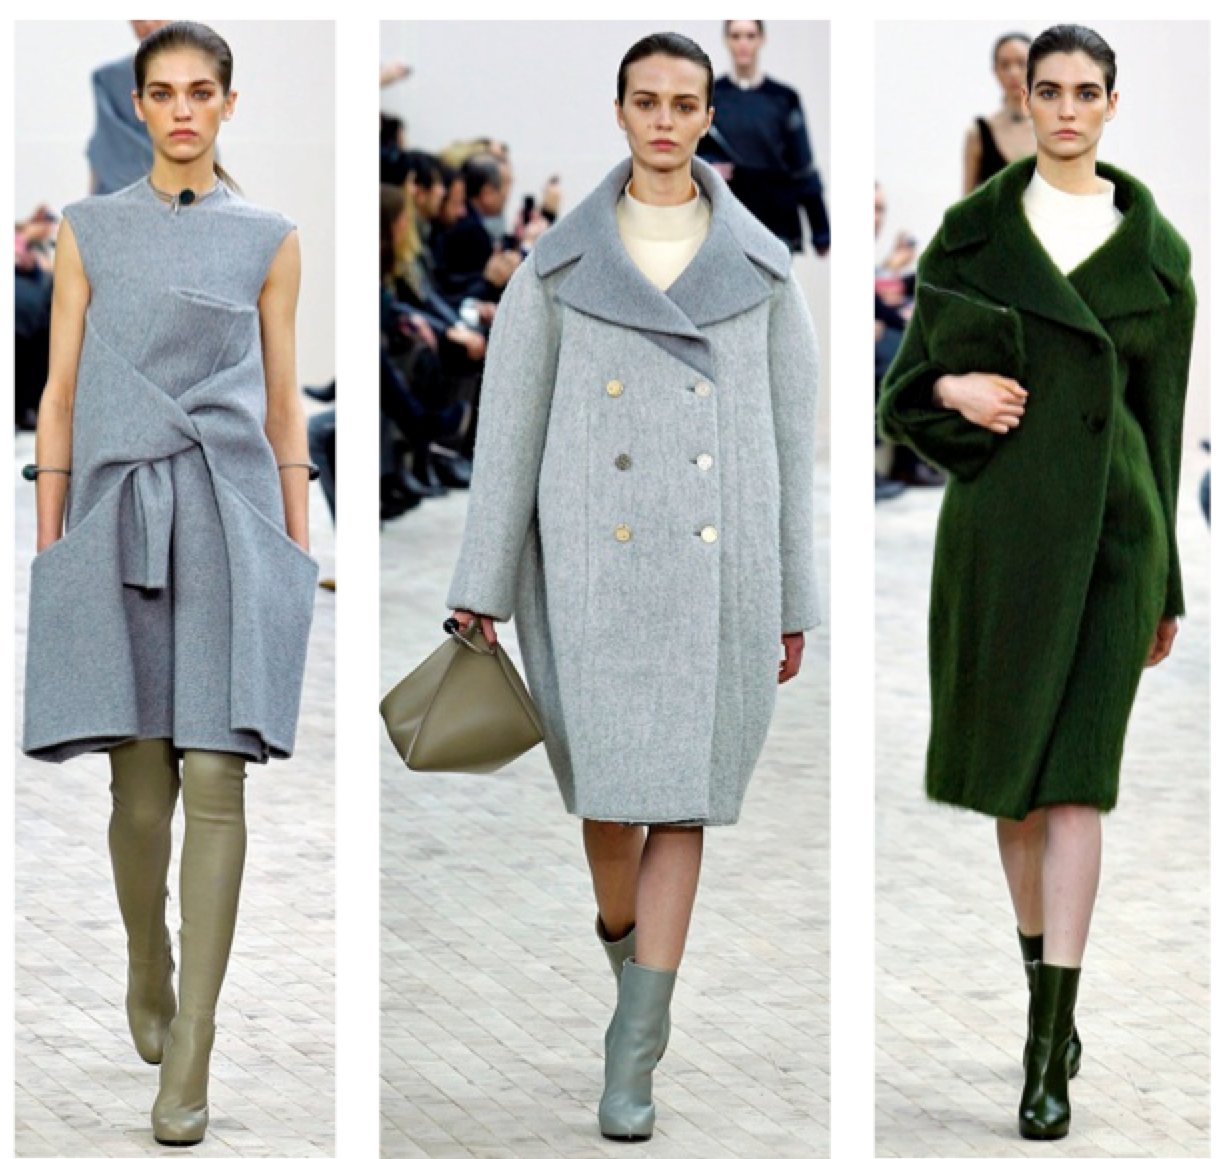 Céline RTW Fall 2013 green and grey